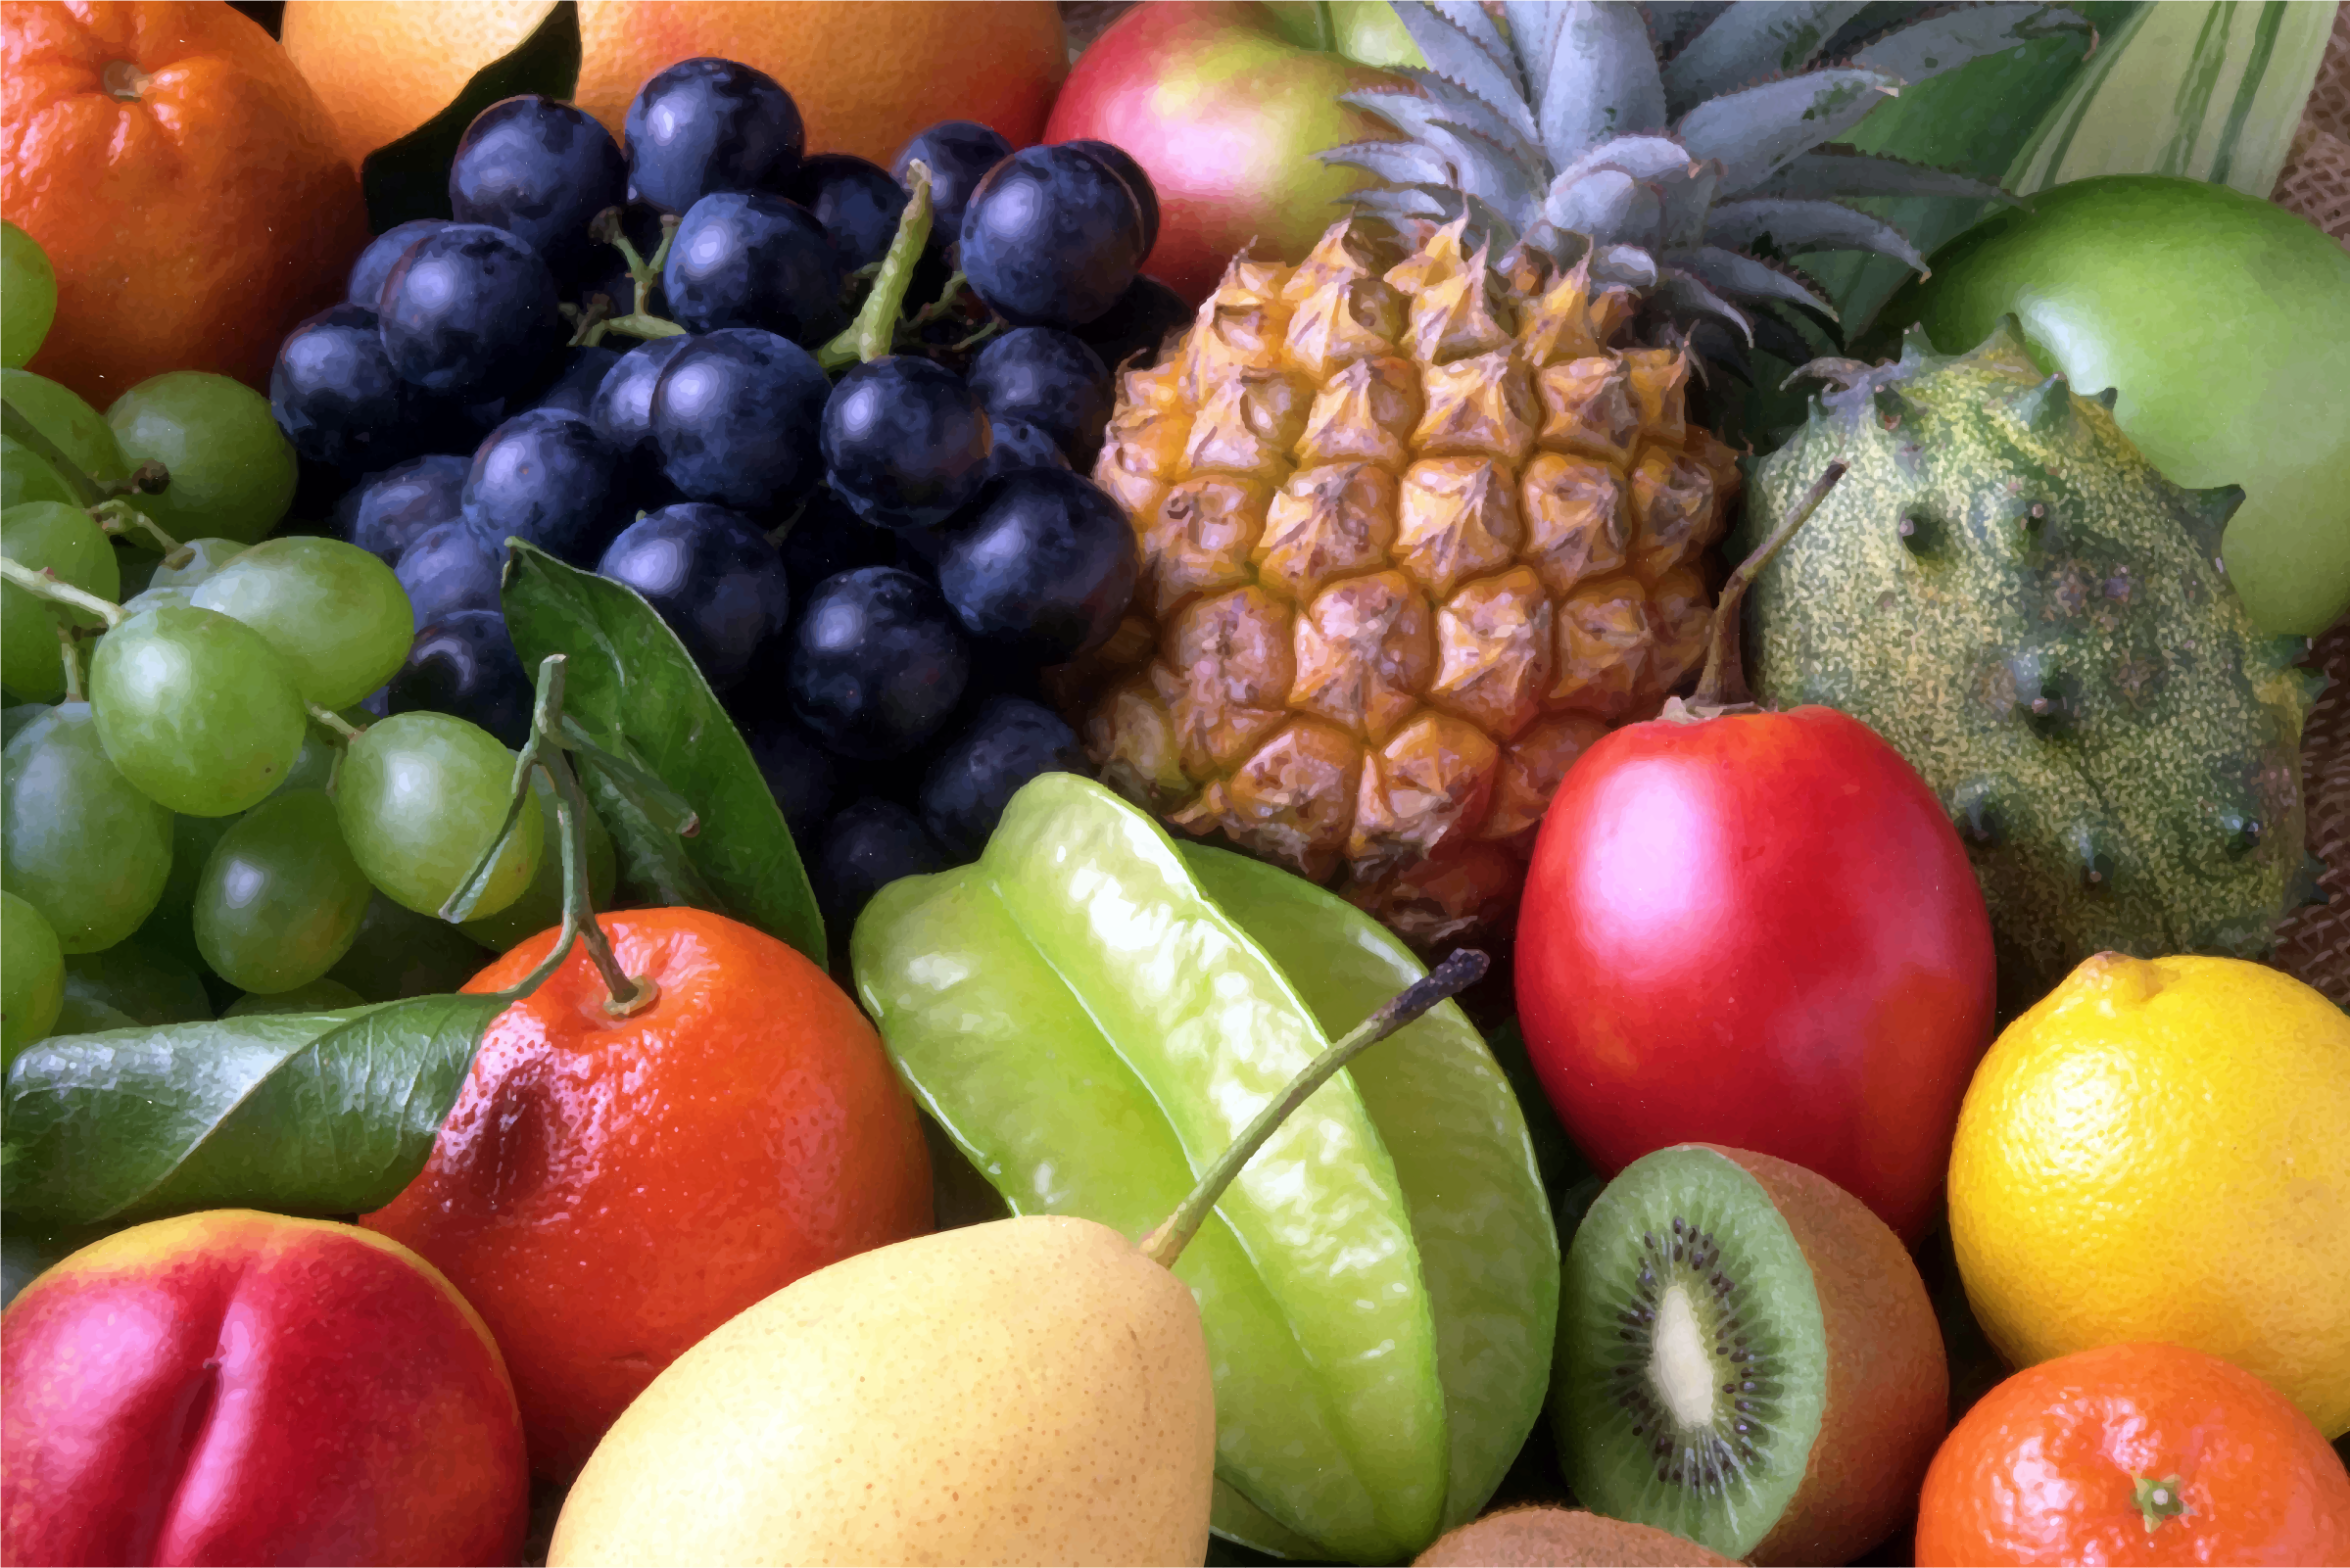 https://openclipart.org/image/2400px/svg_to_png/220714/Fruits.png